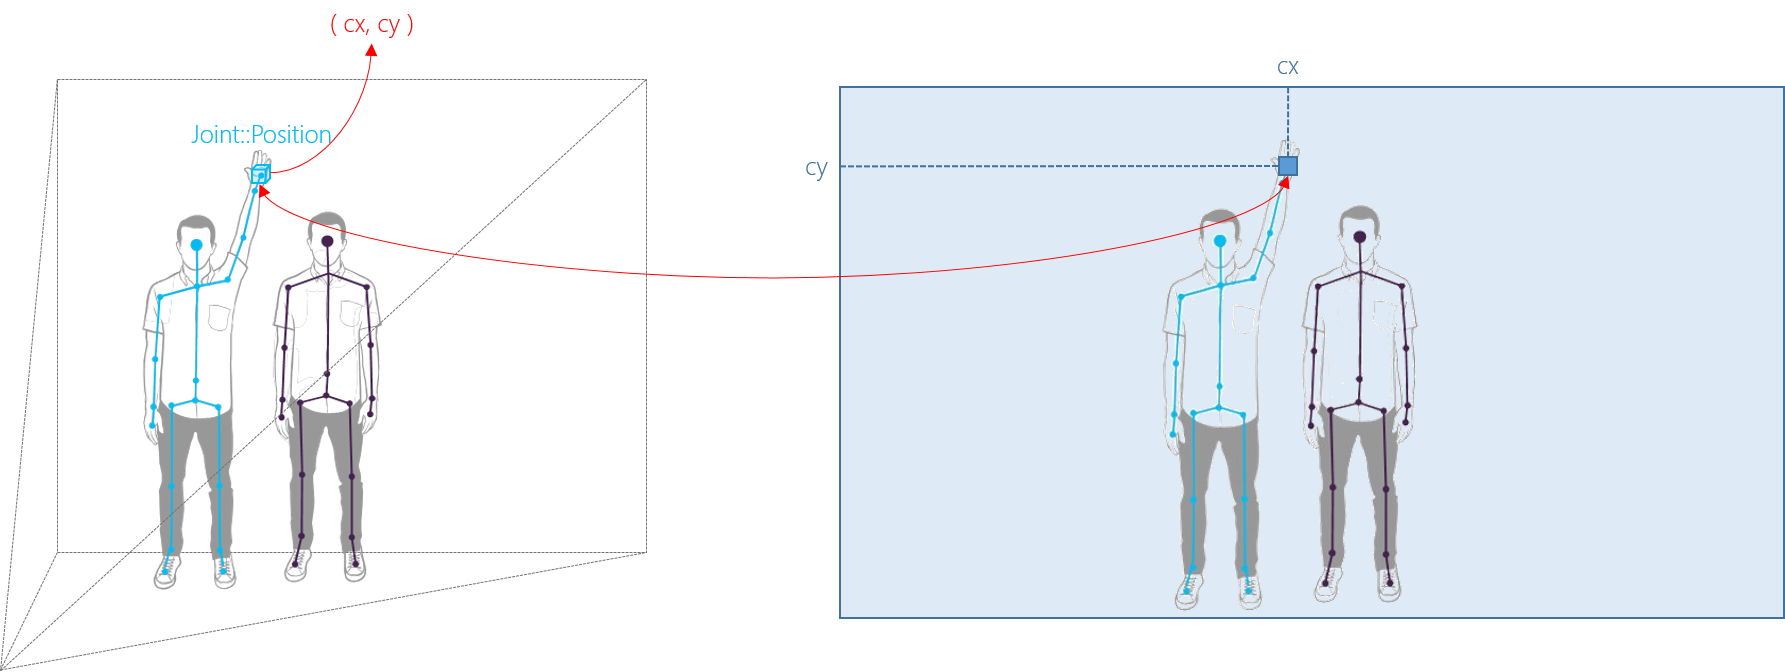 Kinect v2 Coordinate System Mapping – Summary?Blog